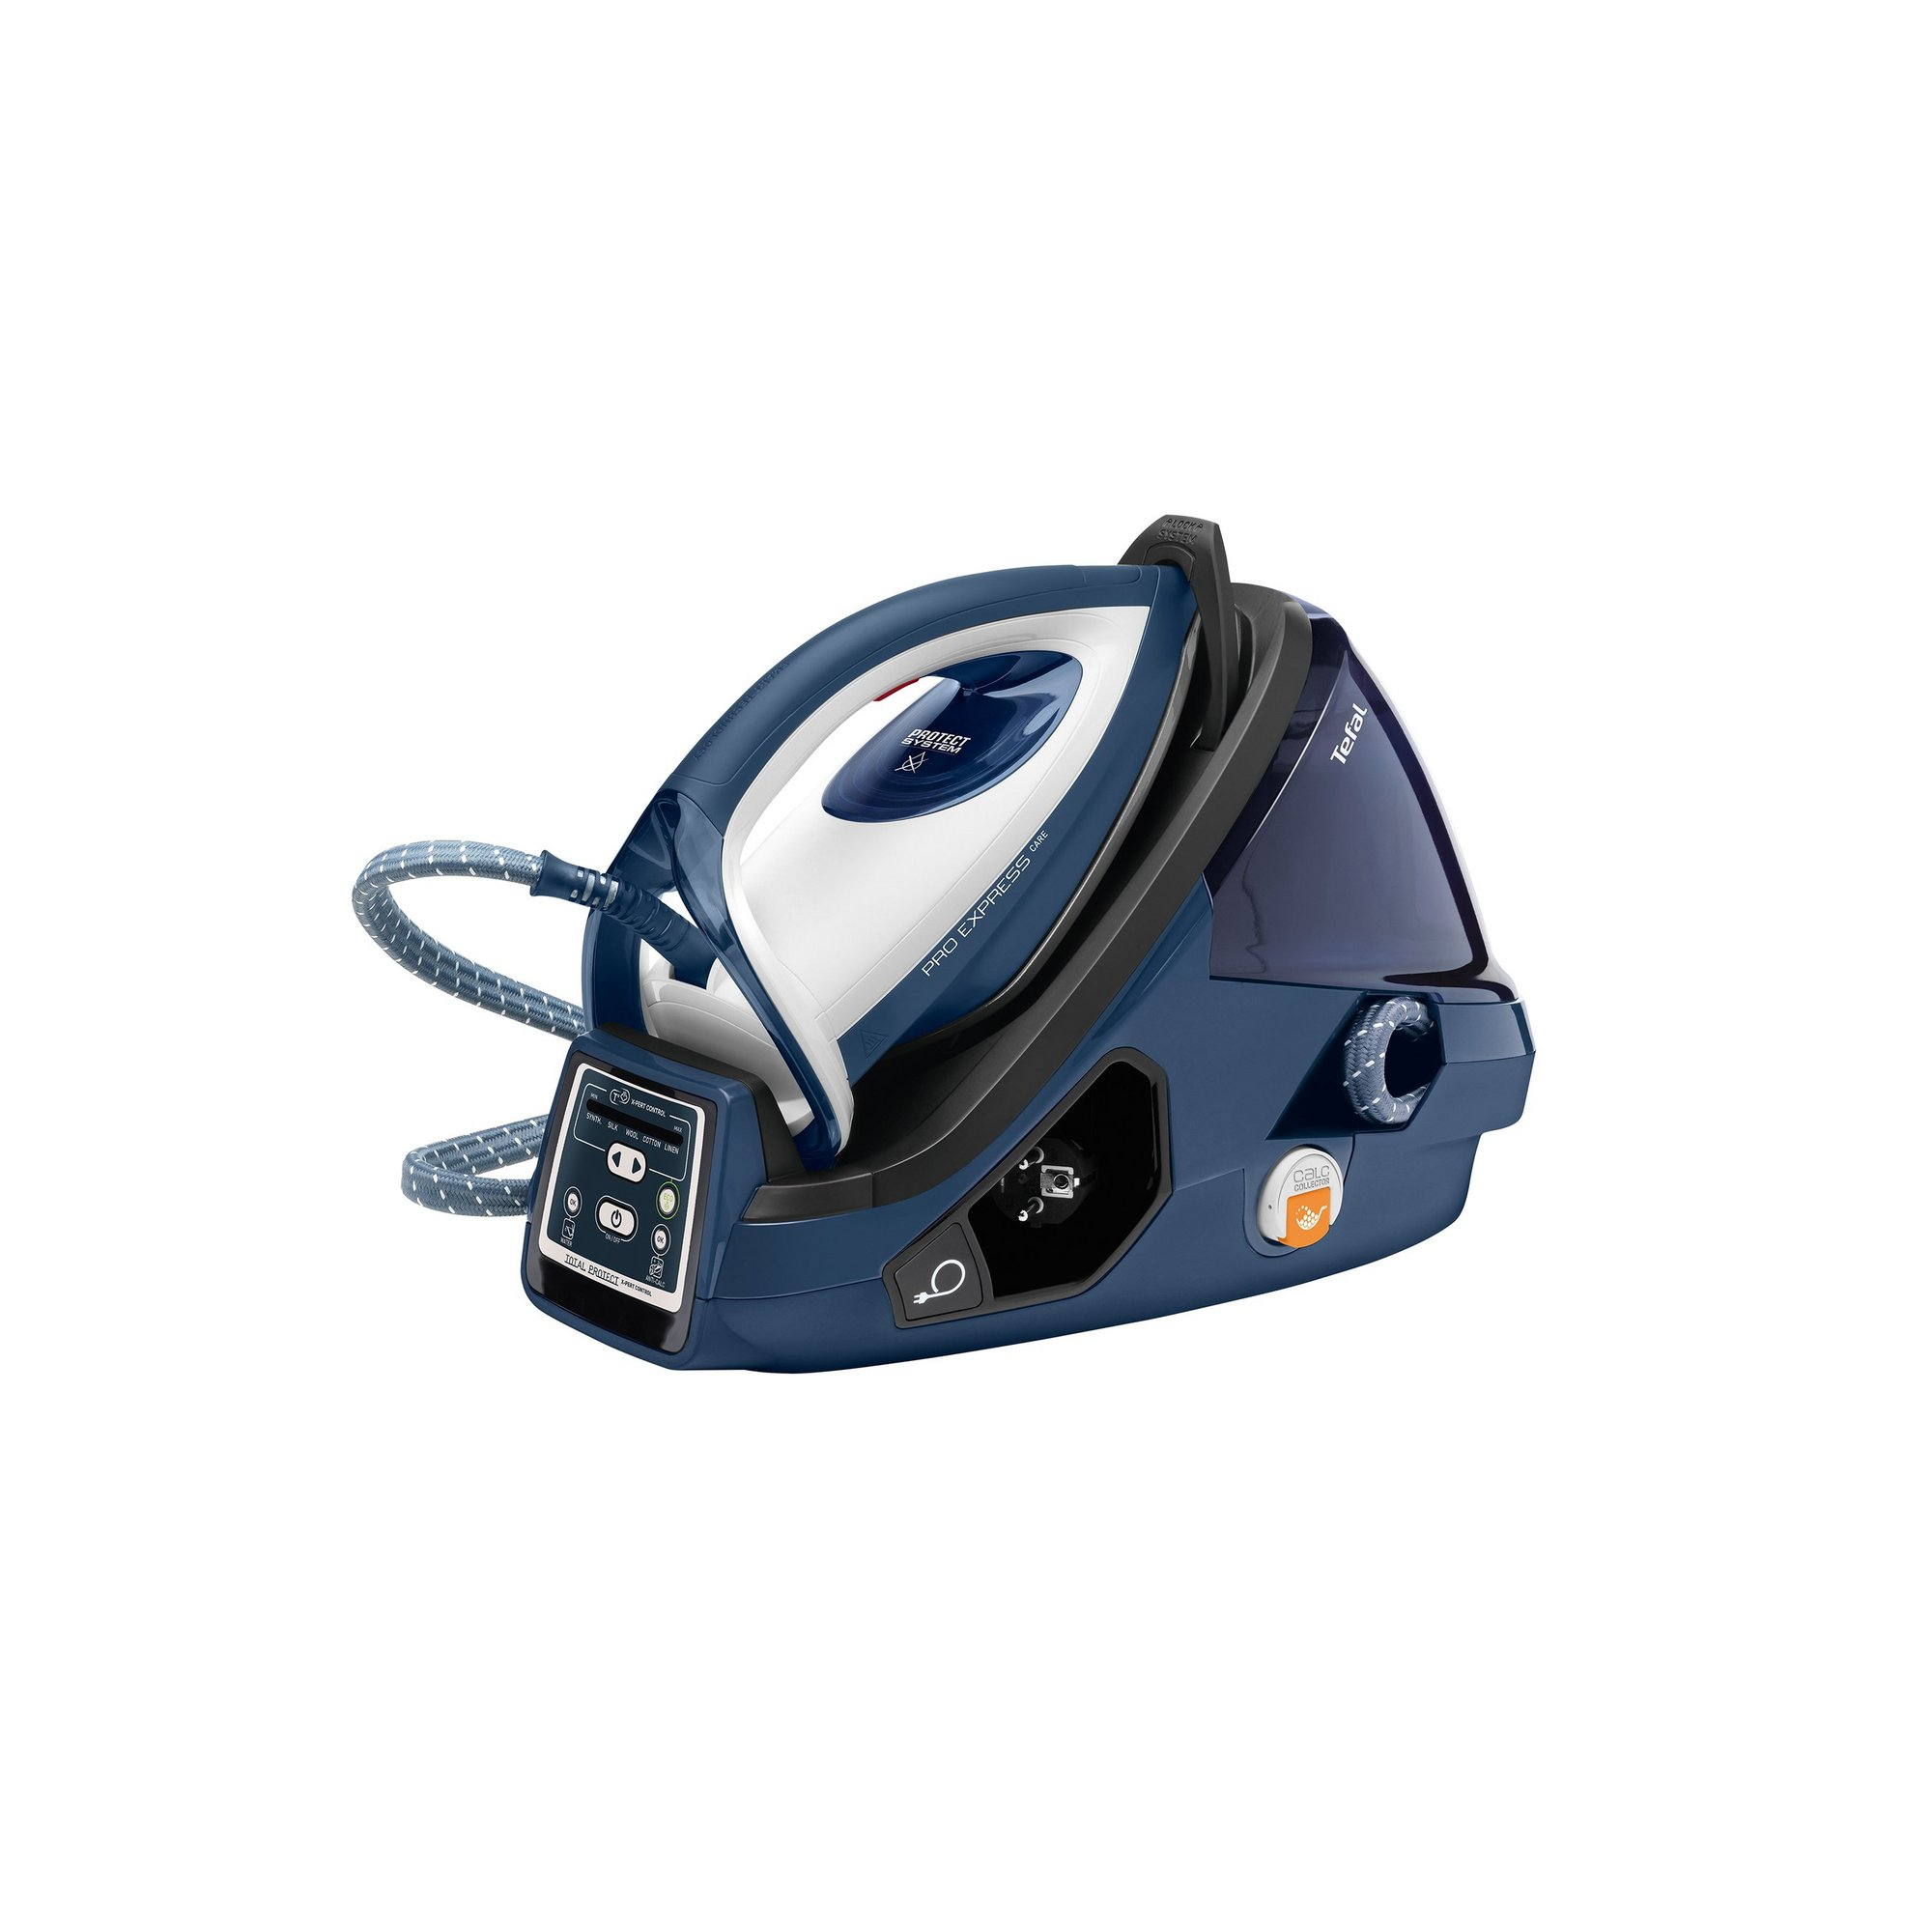 Image of Tefal Pro Express Care Steam Generator